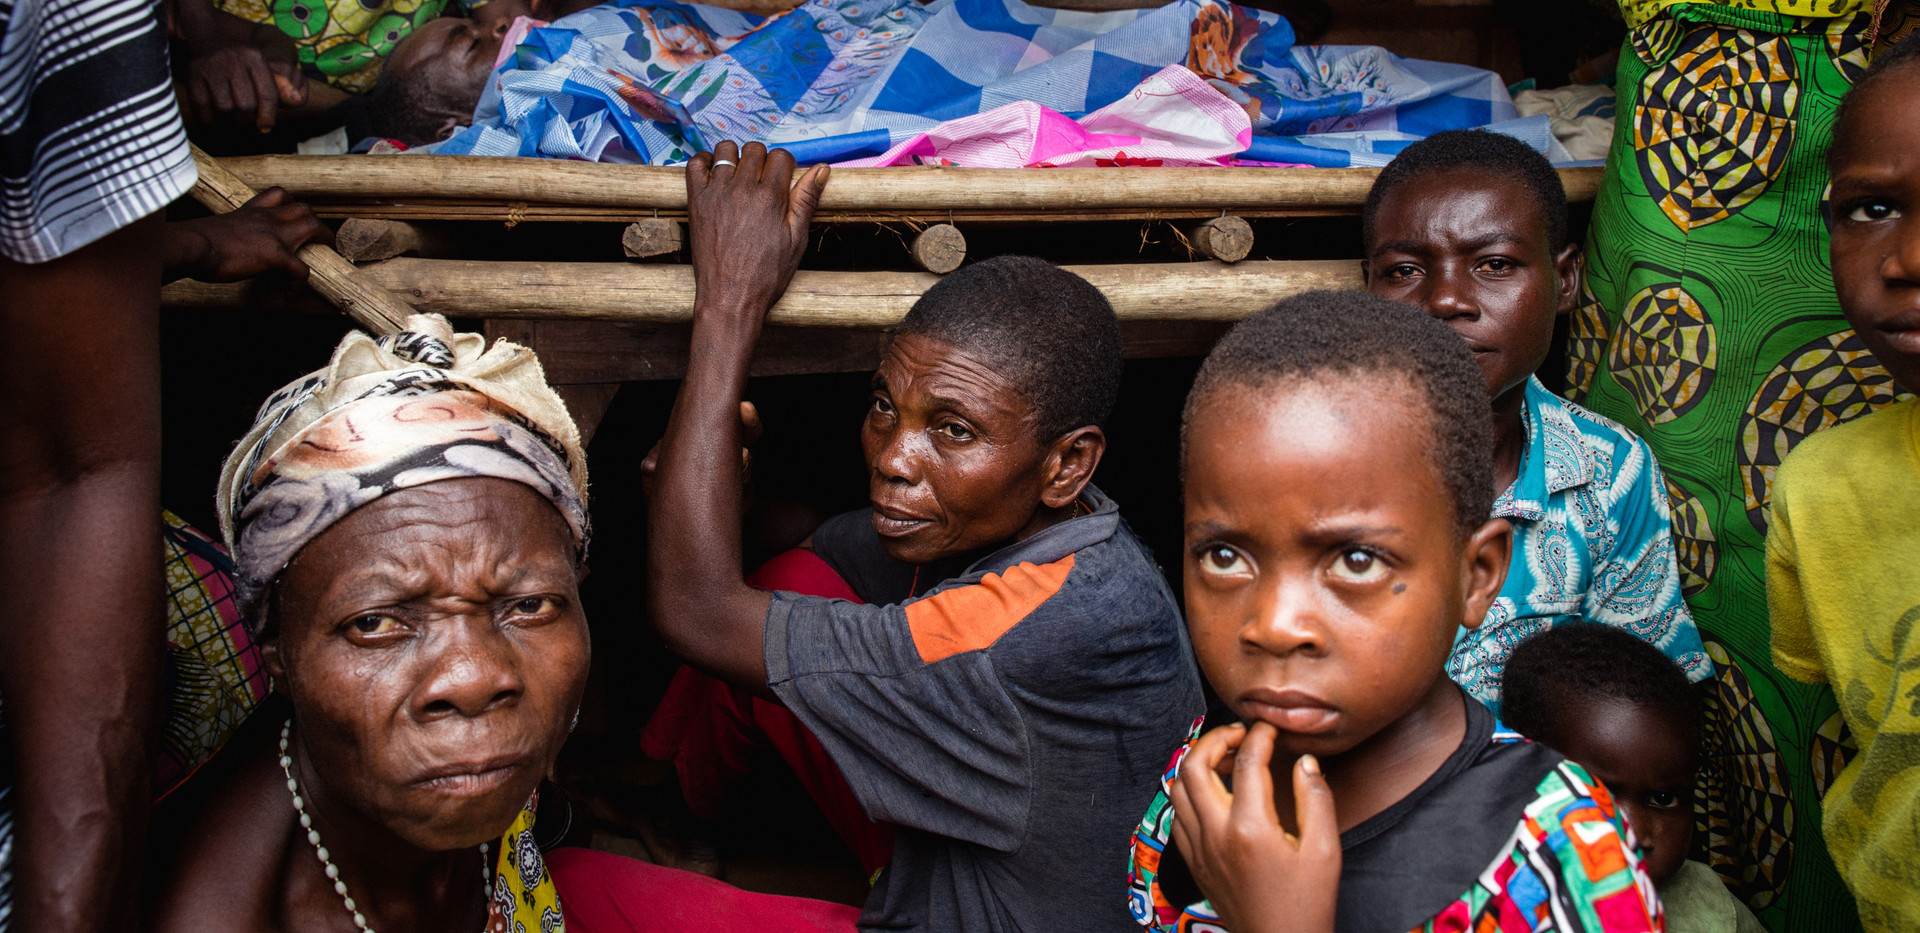 In Lwemba, during a funeral, a woman mourns her husband surrounded by people from the village.